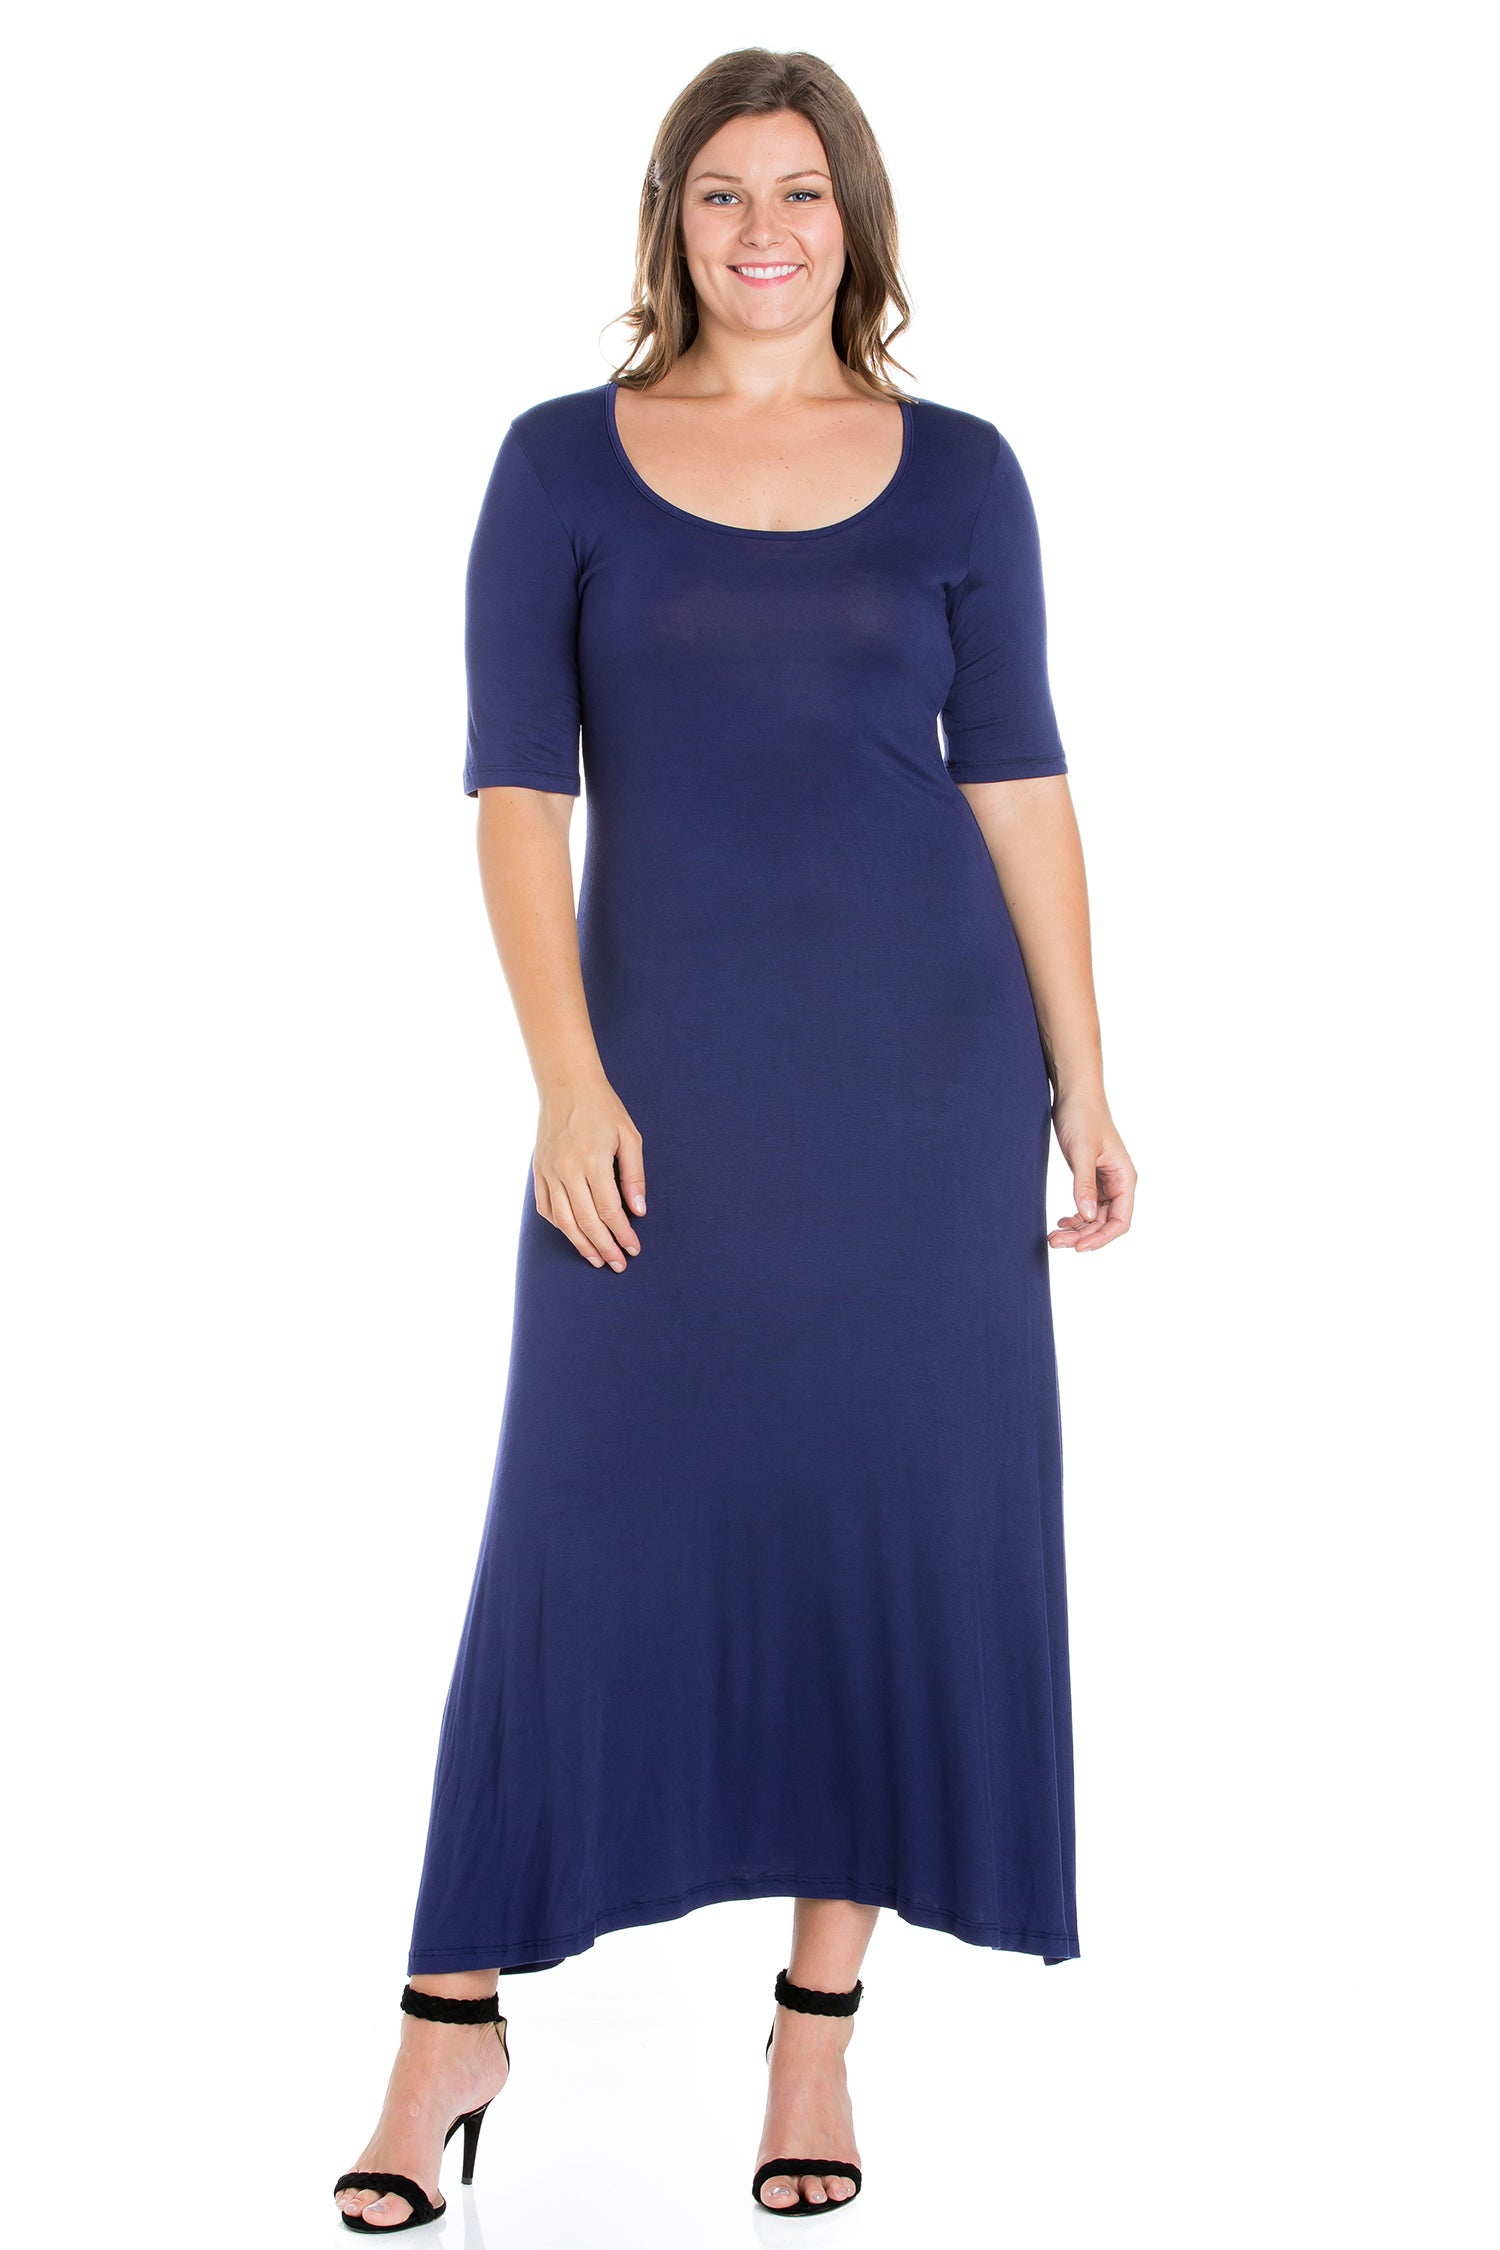 24seven Comfort Apparel Elbow Length Sleeve Plus Size Maxi Dress-DRESSES-24Seven Comfort Apparel-NAVY-1X-24/7 Comfort Apparel